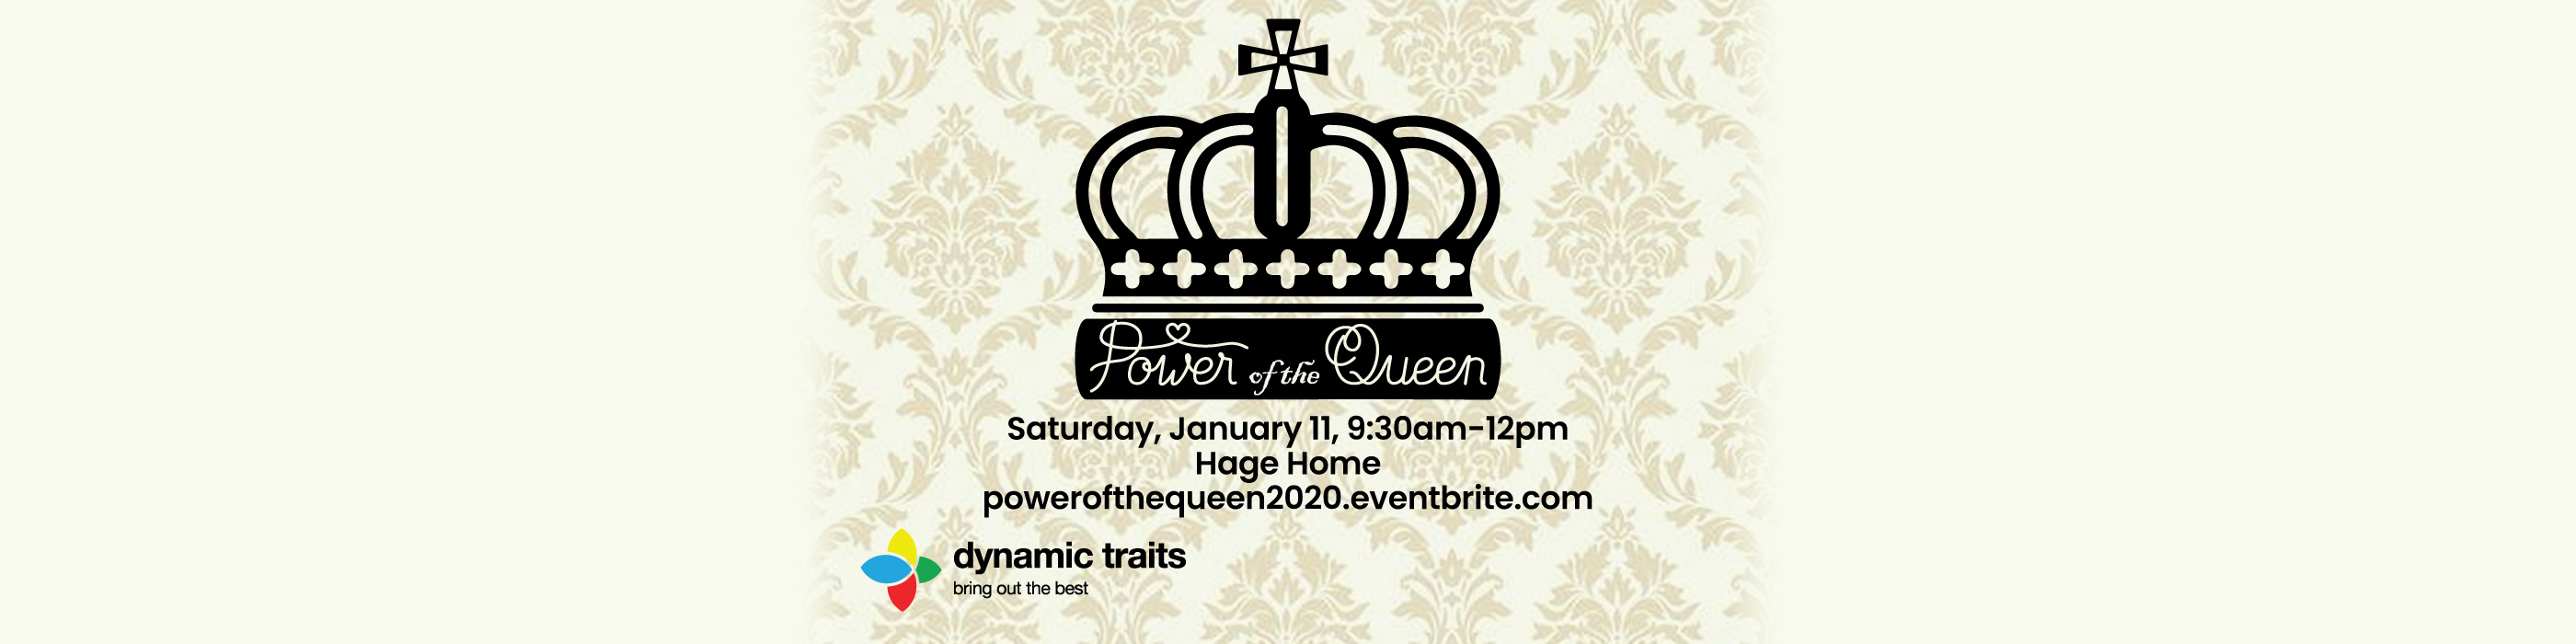 Dynamic-Traits-Power-of-the-Queen-011120-WEB-2800x700